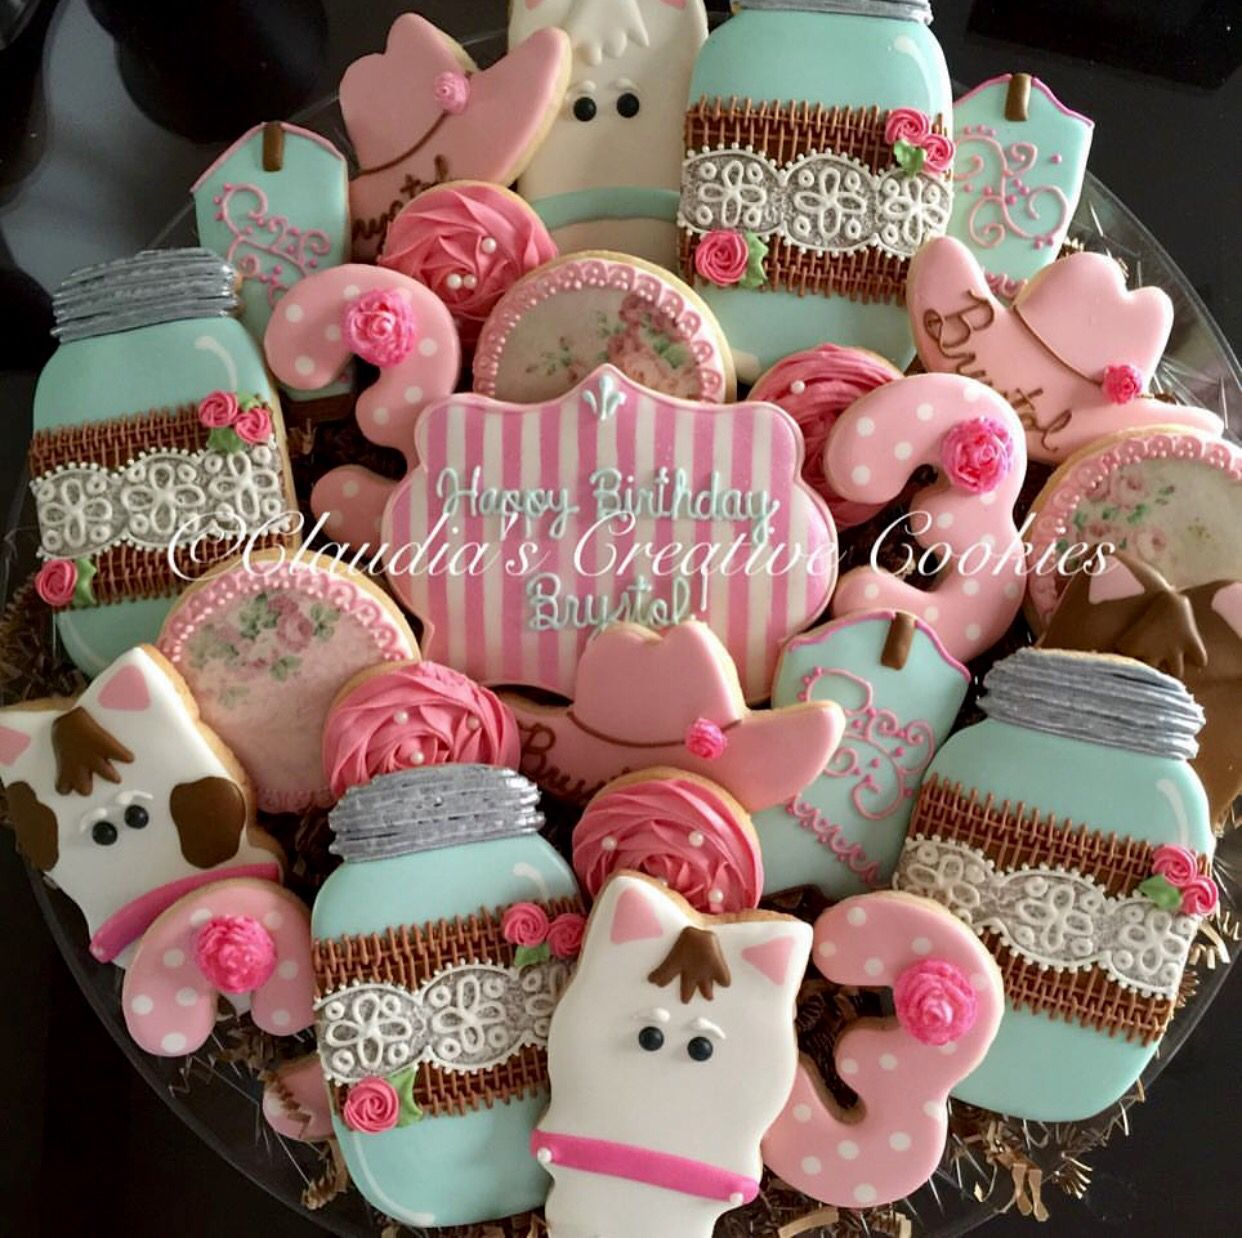 Cowgirl Birthday Decorations Vintage Shabby Chic Western Birthday Cookies Horses Cowboy Hats